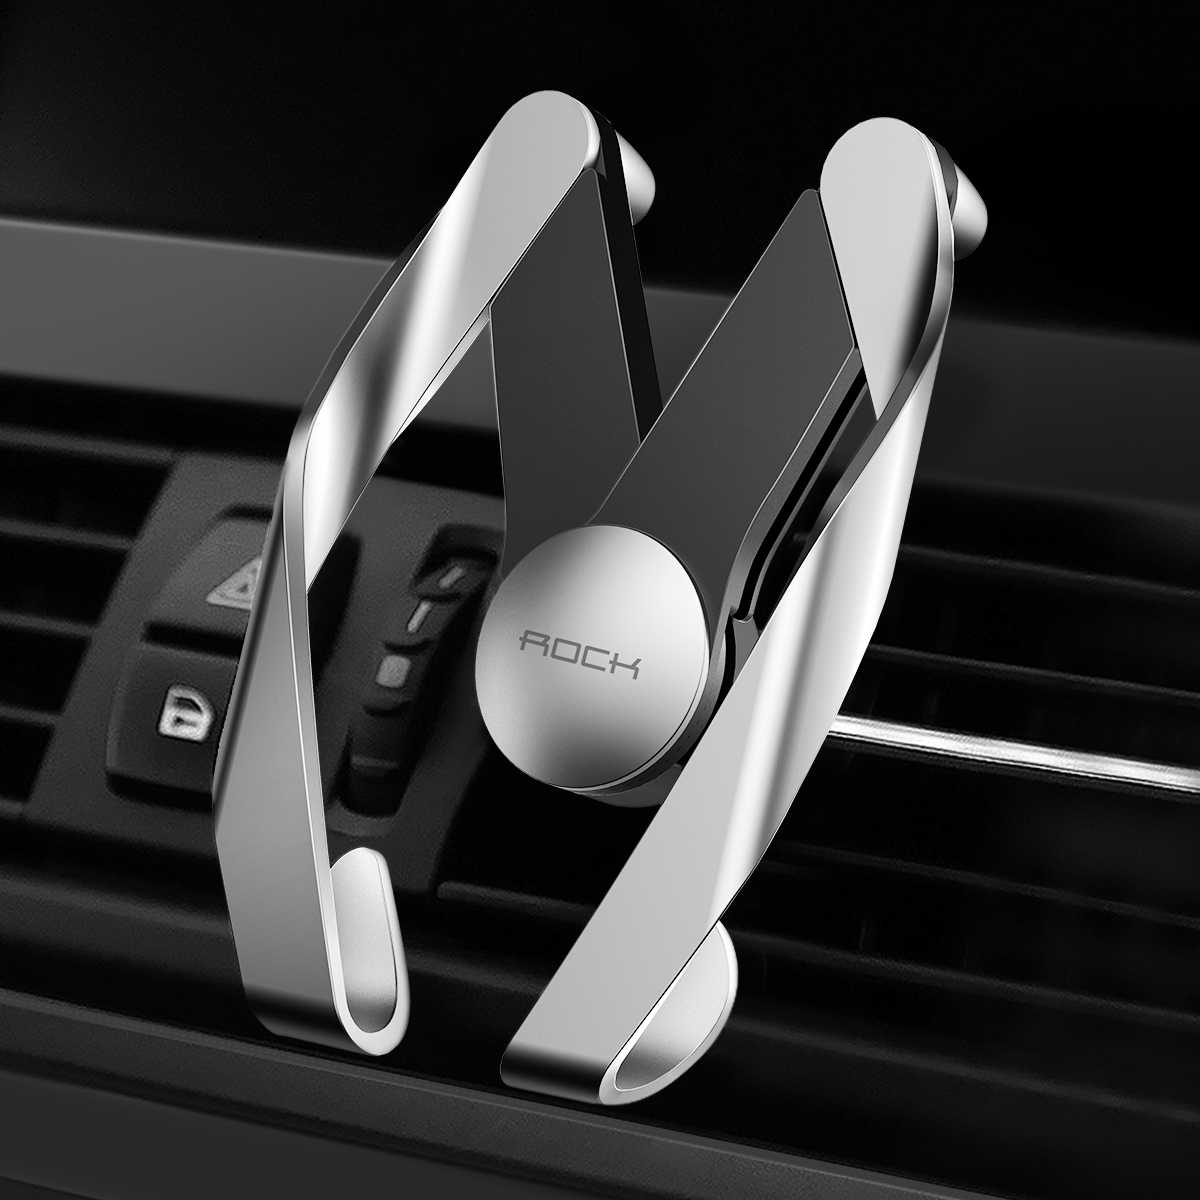 hight resolution of rock universal autobot mobile vent phone car holder for iphone samsung car abs material air outlet